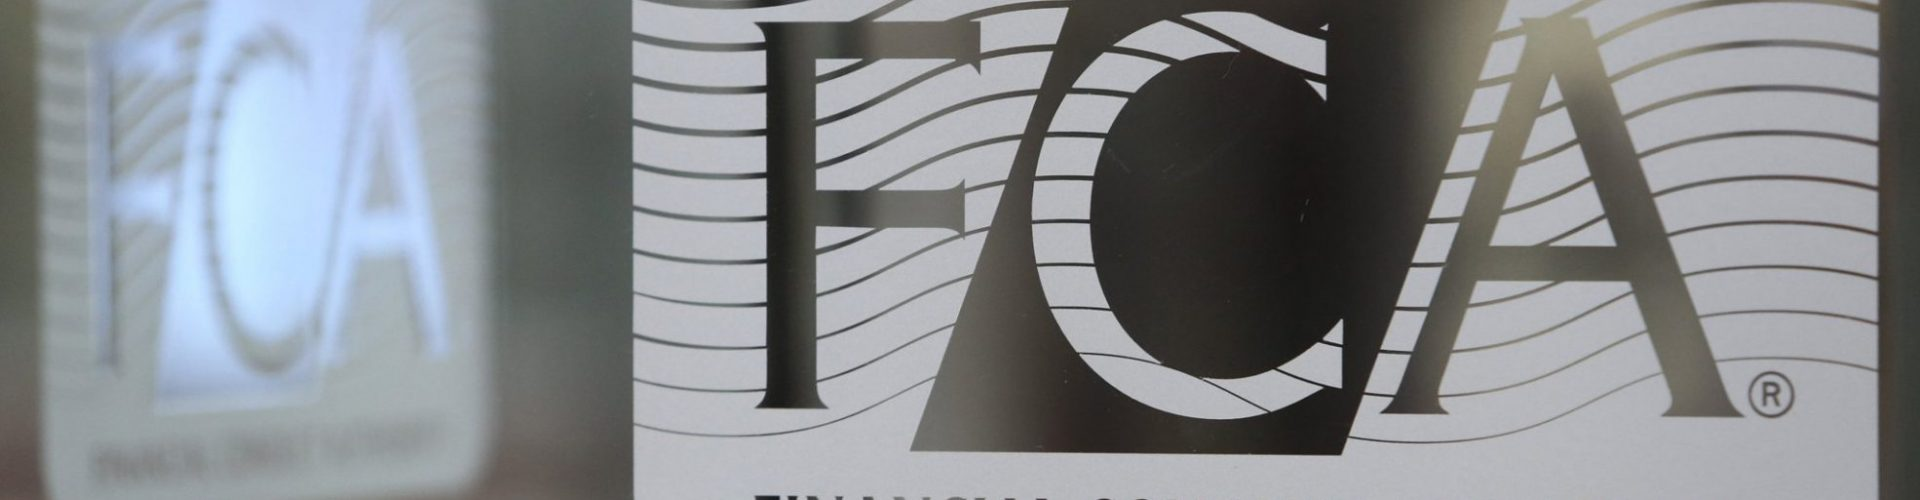 UK Financial Conduct Authority sounds caution over cryptocurrency derivatives